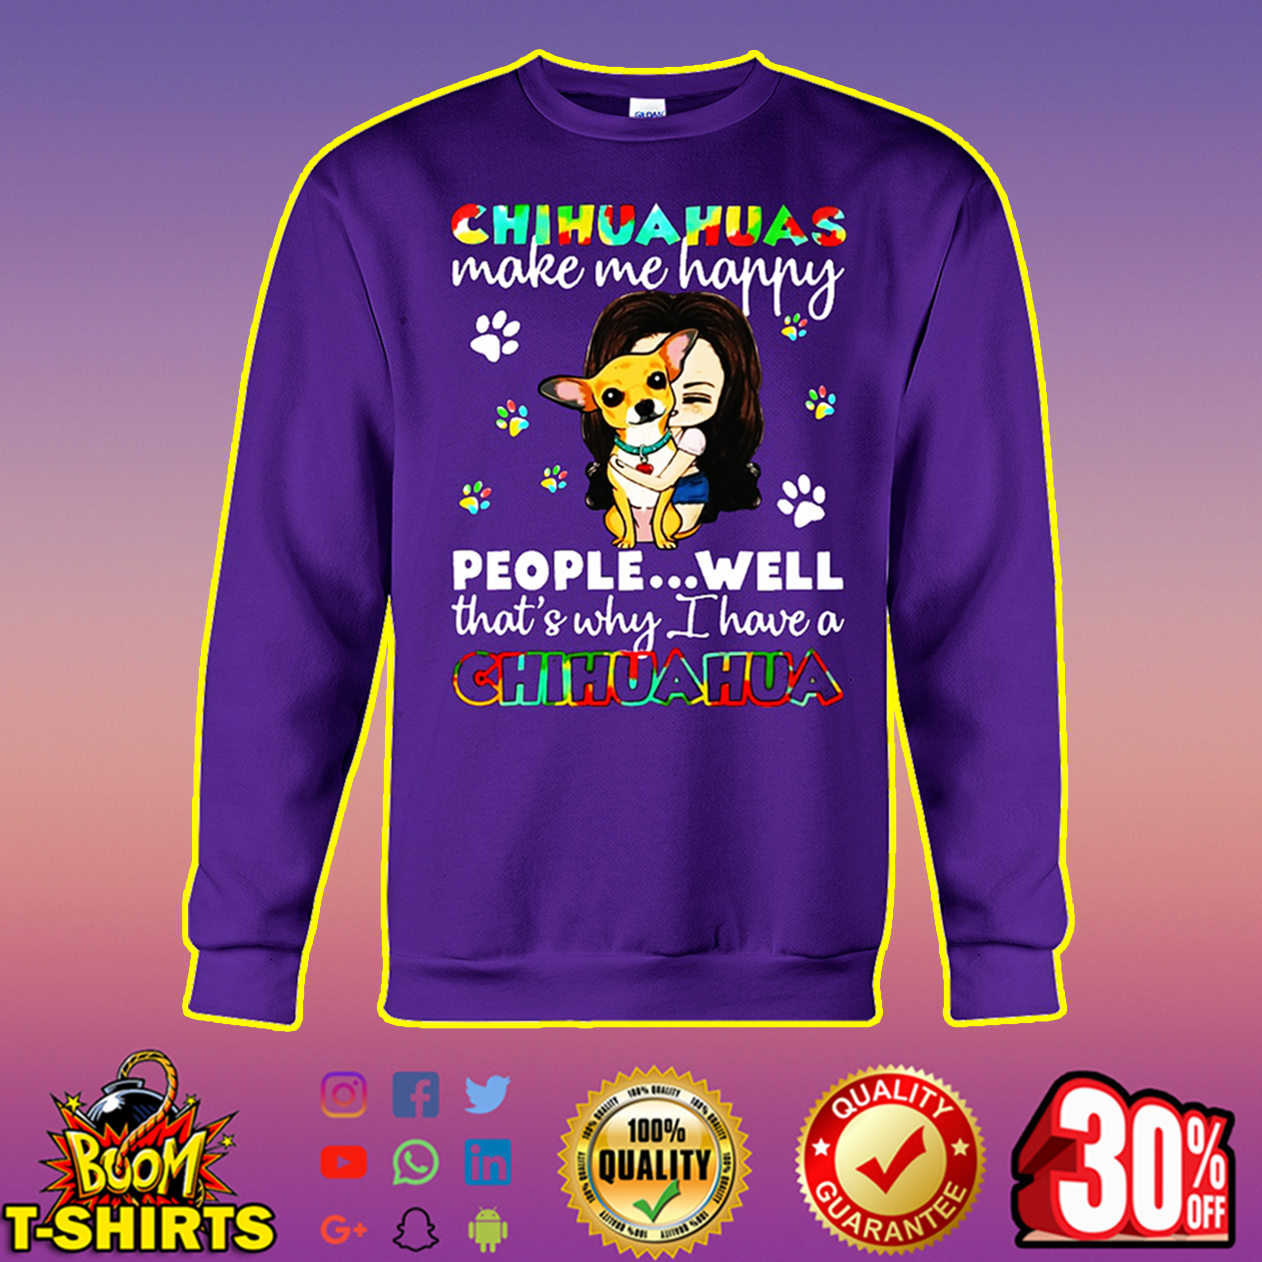 Chihuahuas make me happy people well that's why I have a Chihuahua sweatshirt